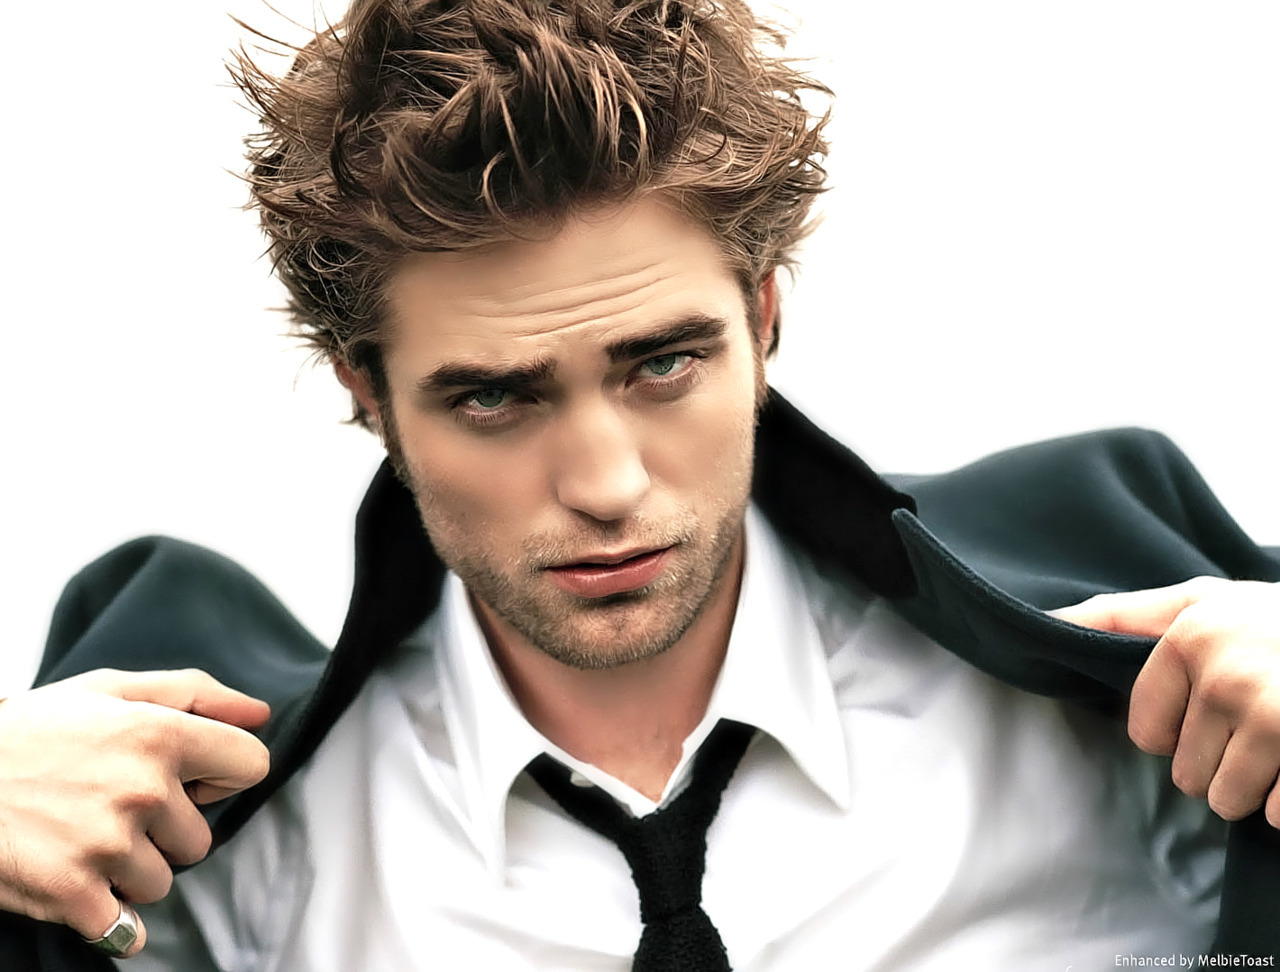 Good Night tumblr! (Vanity Fair Photoshoot 2009)